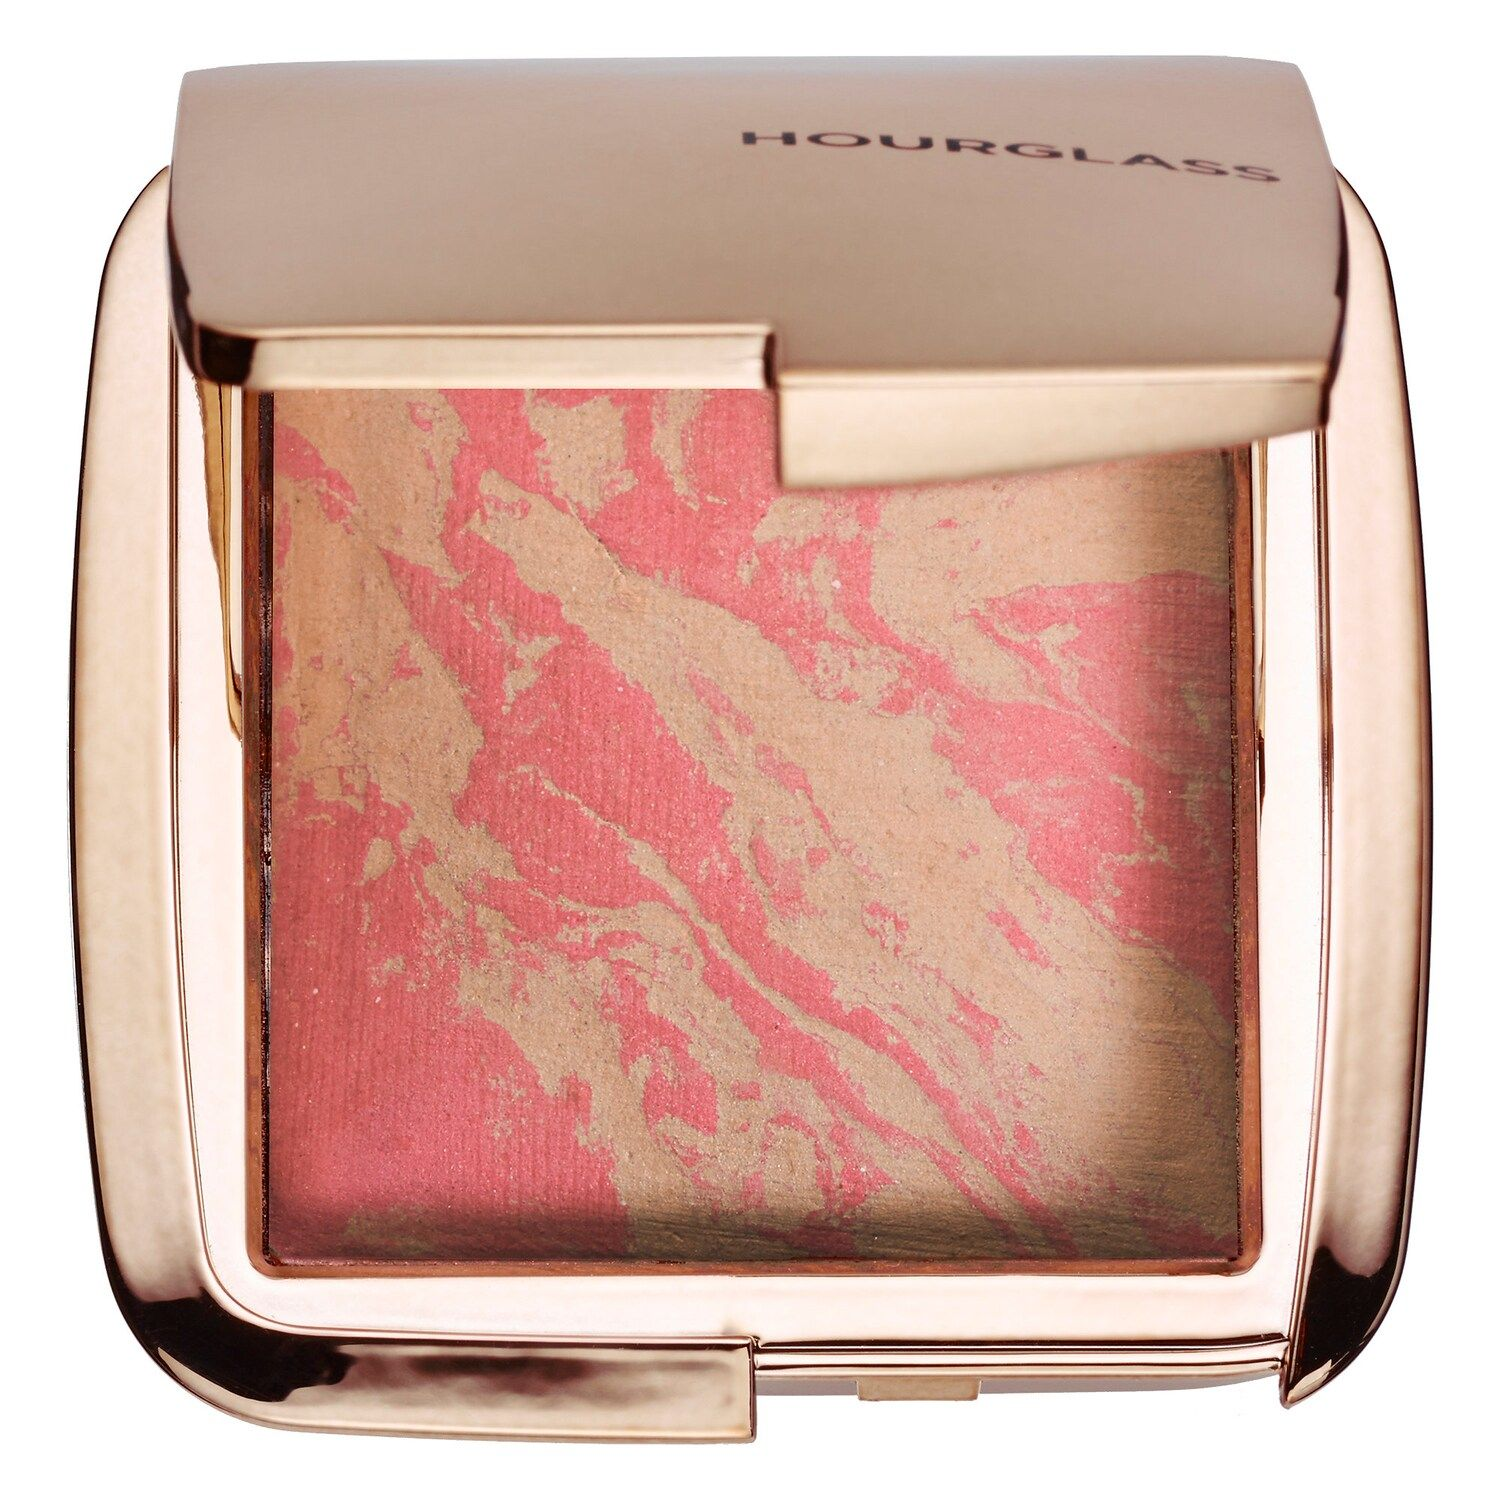 Ambient Lighting Blush Collection Hourglass Sephora in